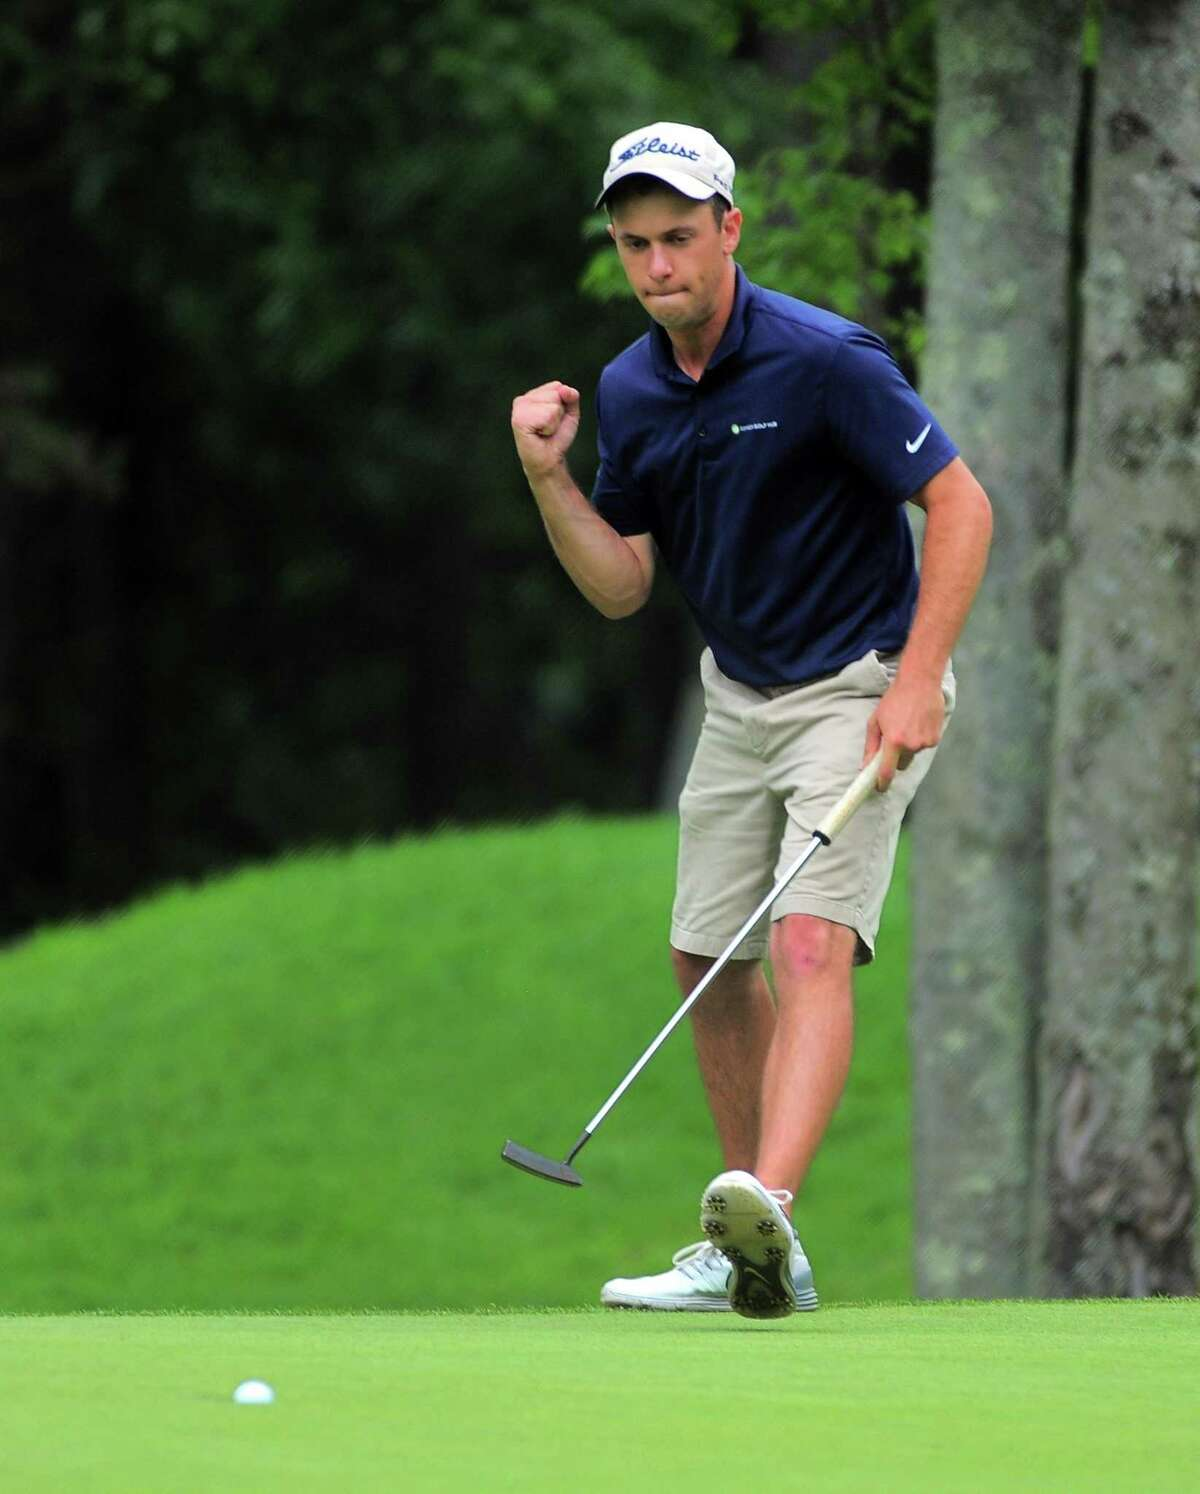 Richard Dowling sinks the final putt to win the 115th Connecticut Amateur.